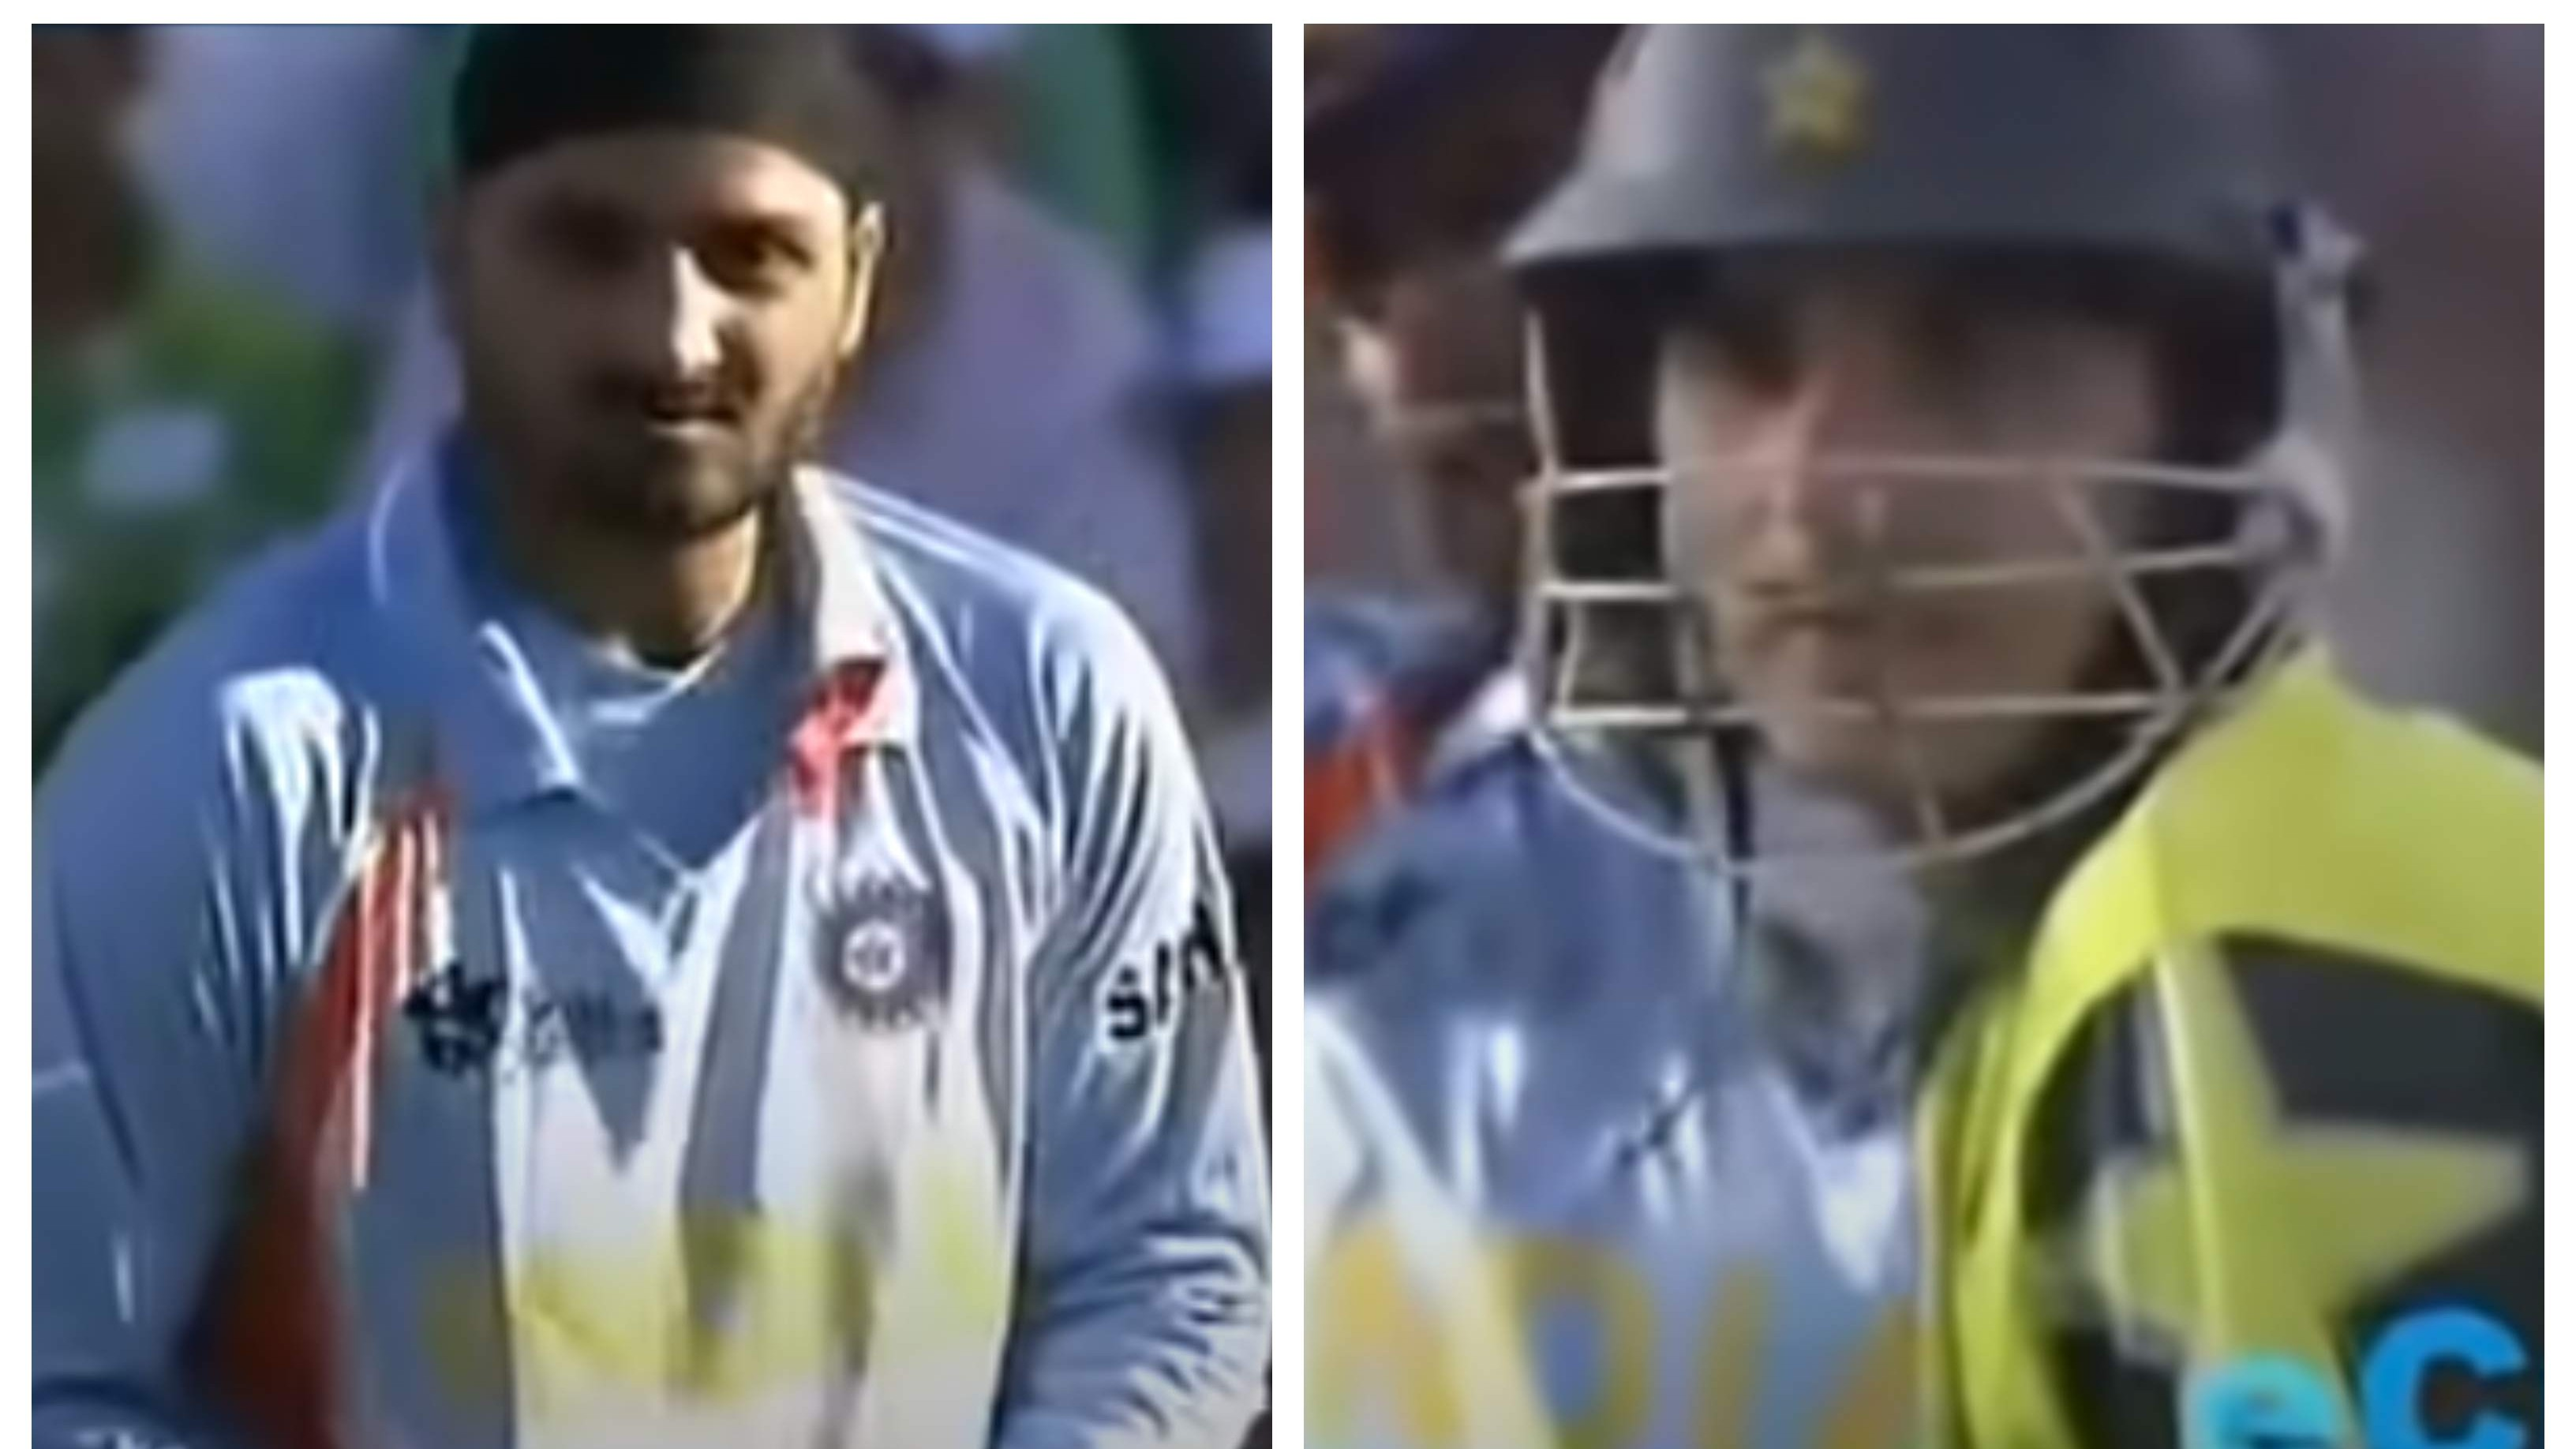 Harbhajan admits being under pressure after Misbah hit him for 3 sixes in an over during 2007 T20 WC final